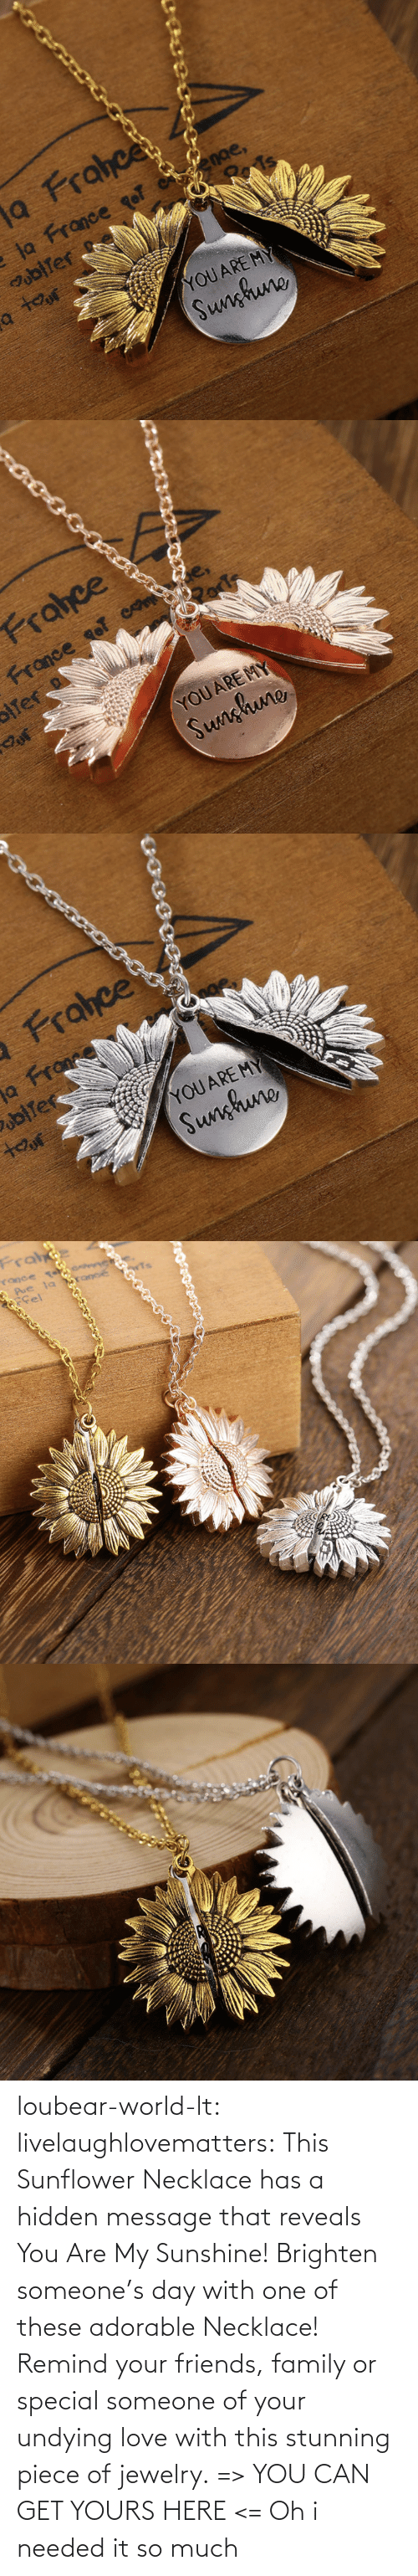 Https T: loubear-world-lt: livelaughlovematters:   This Sunflower Necklace has a hidden message that reveals You Are My Sunshine! Brighten someone's day with one of these adorable Necklace! Remind your friends, family or special someone of your undying love with this stunning piece of jewelry. => YOU CAN GET YOURS HERE <=    Oh i needed it so much